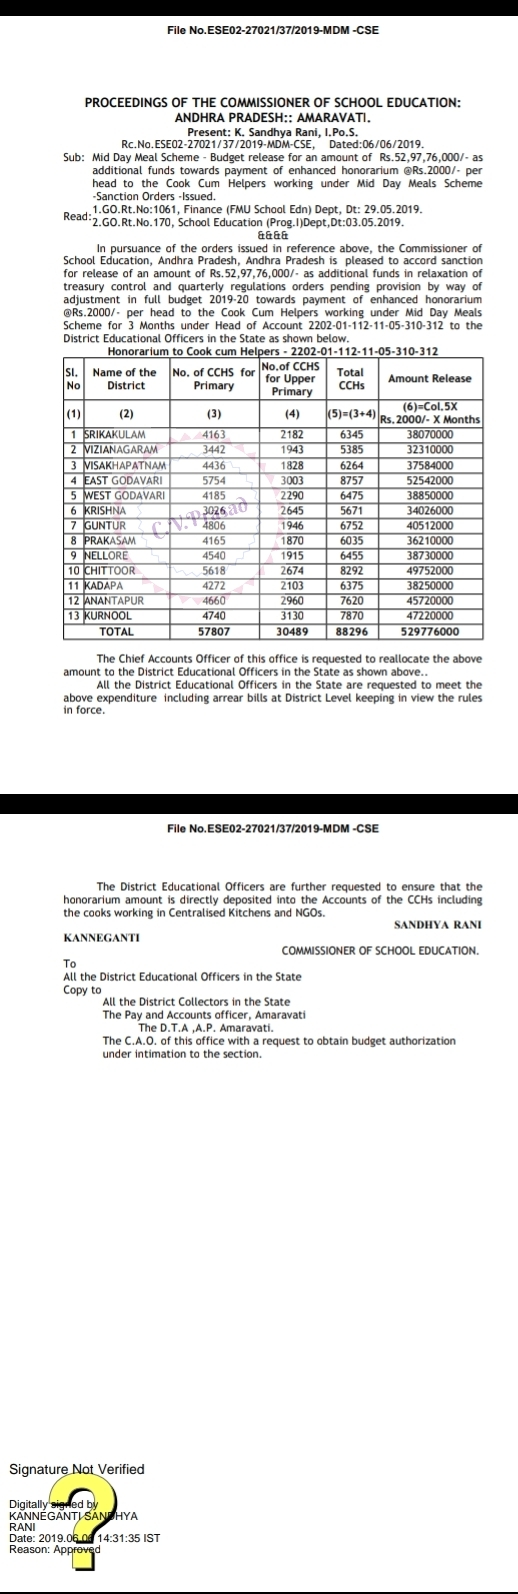 Mid Day Meal Scheme – Budget release for an amount of Rs 52